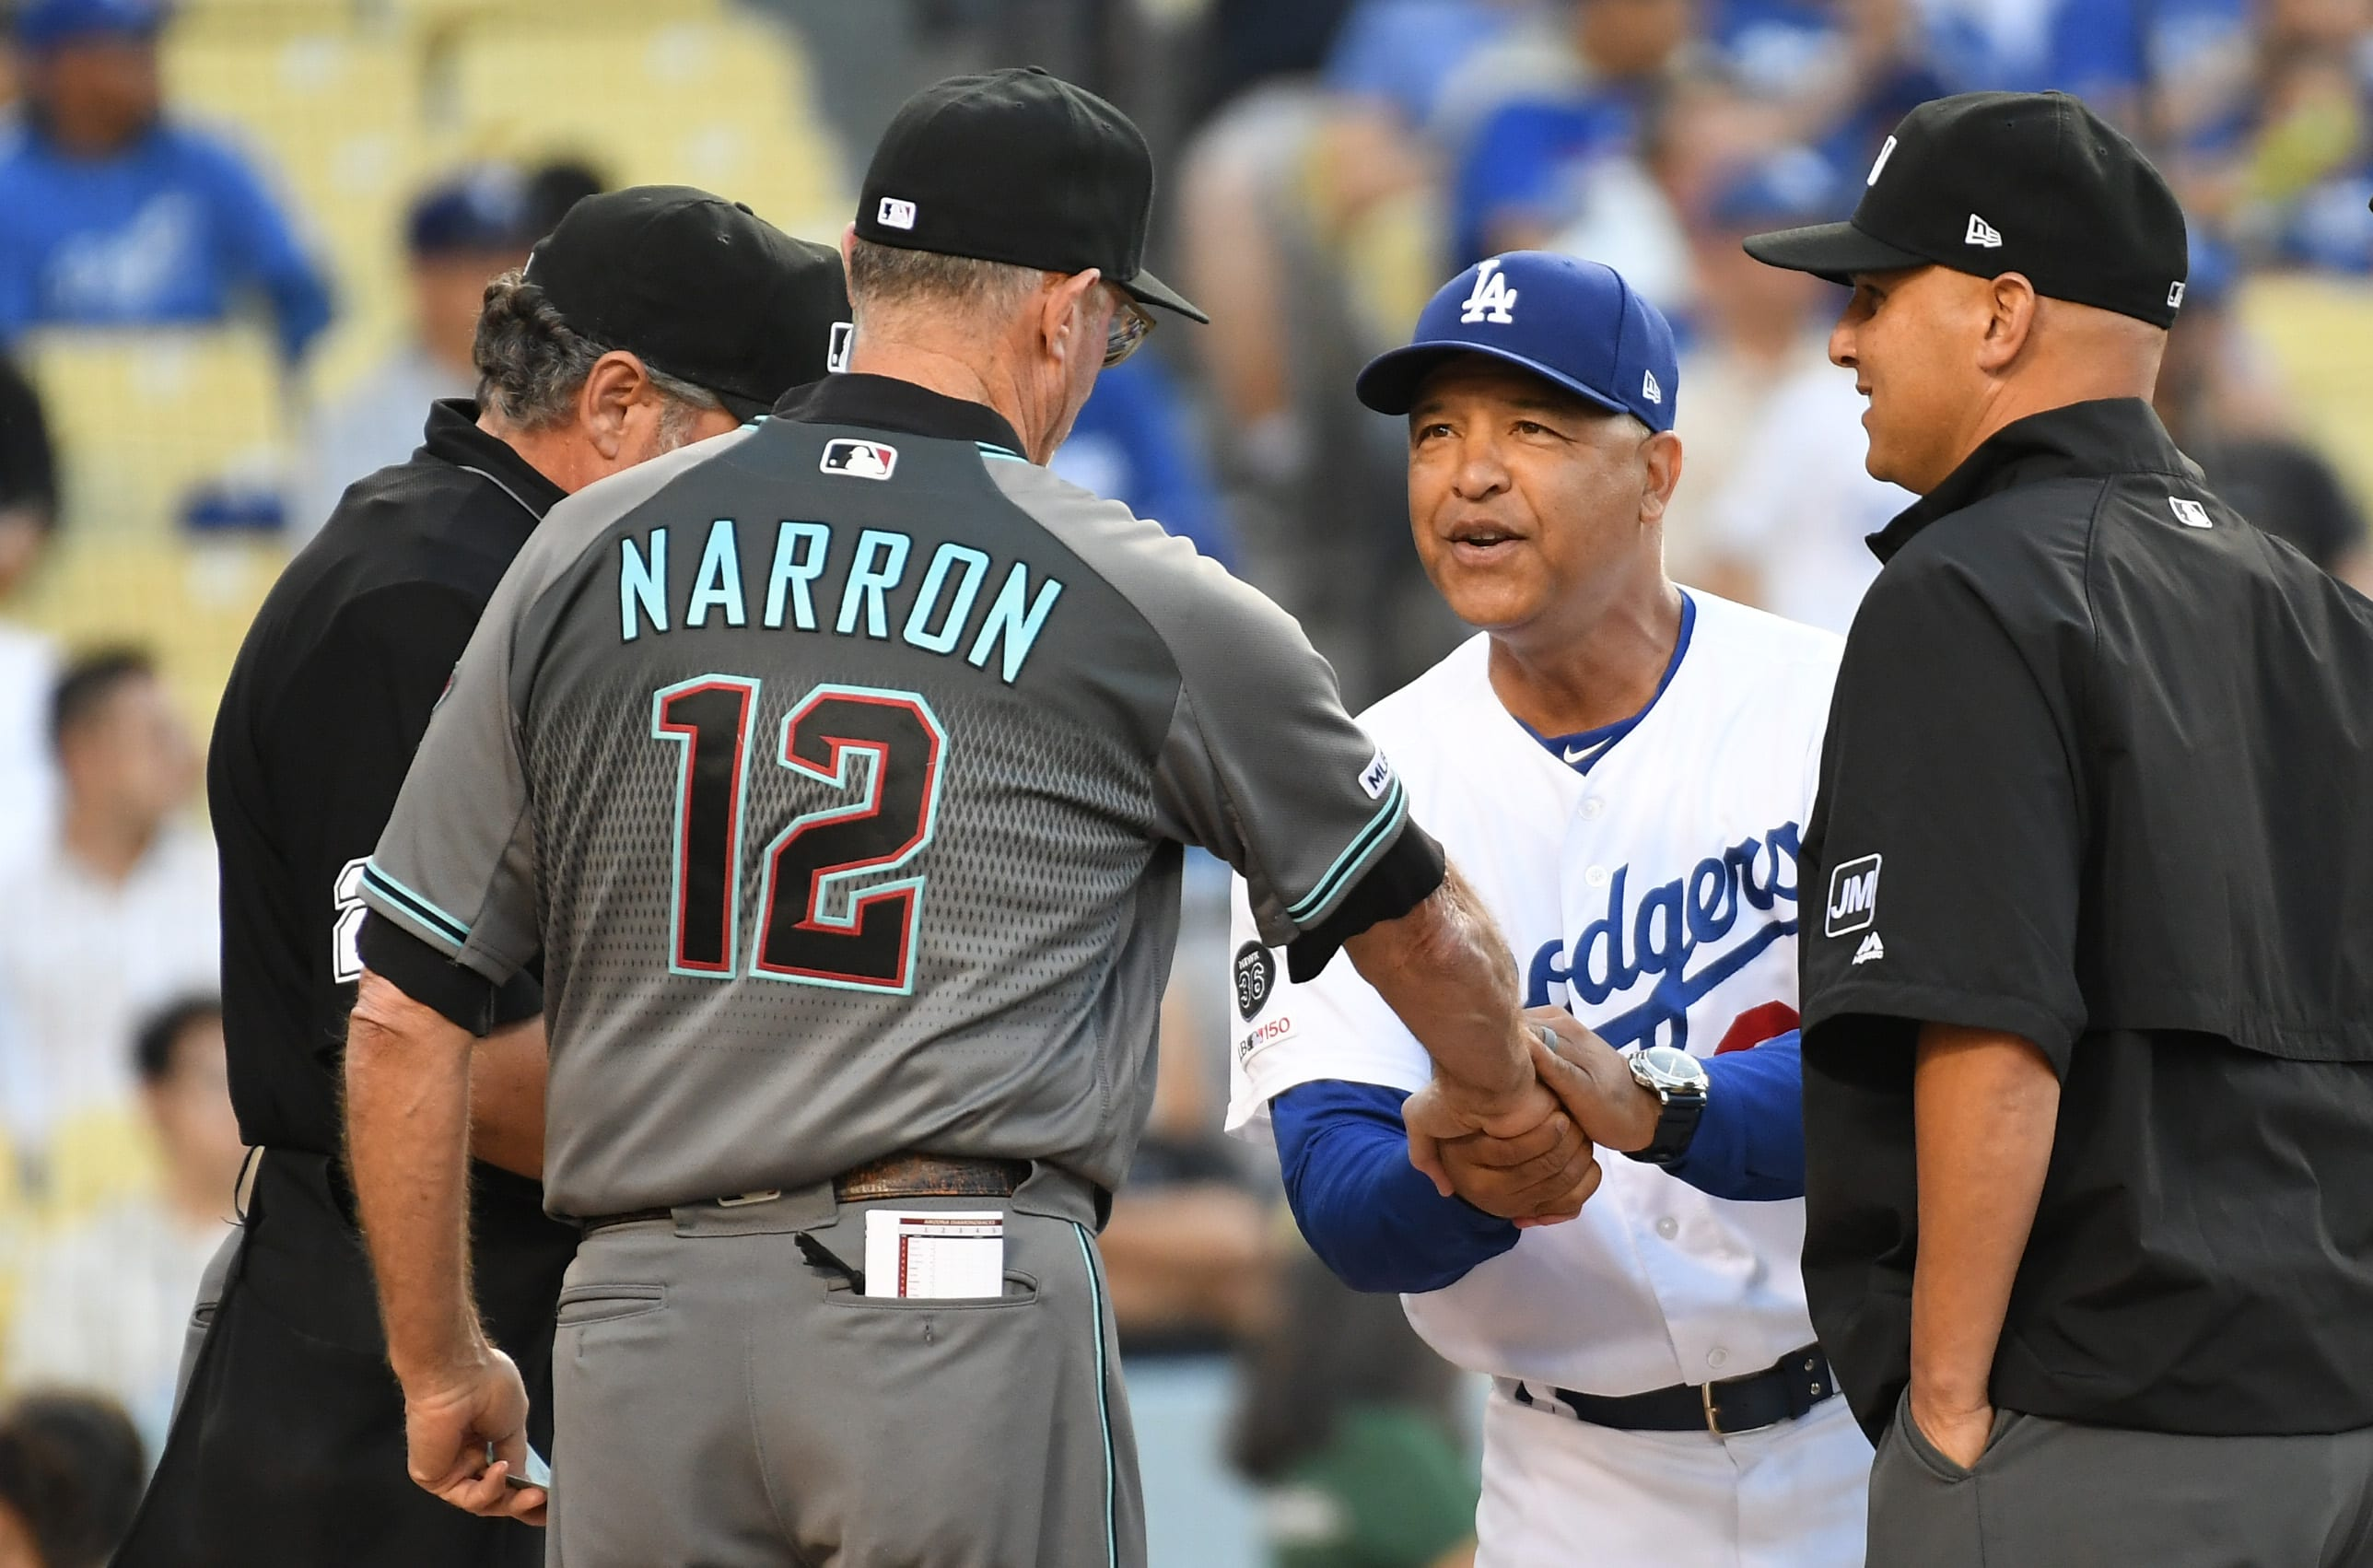 New York Mets Potential Bench Coach Jerry Narron